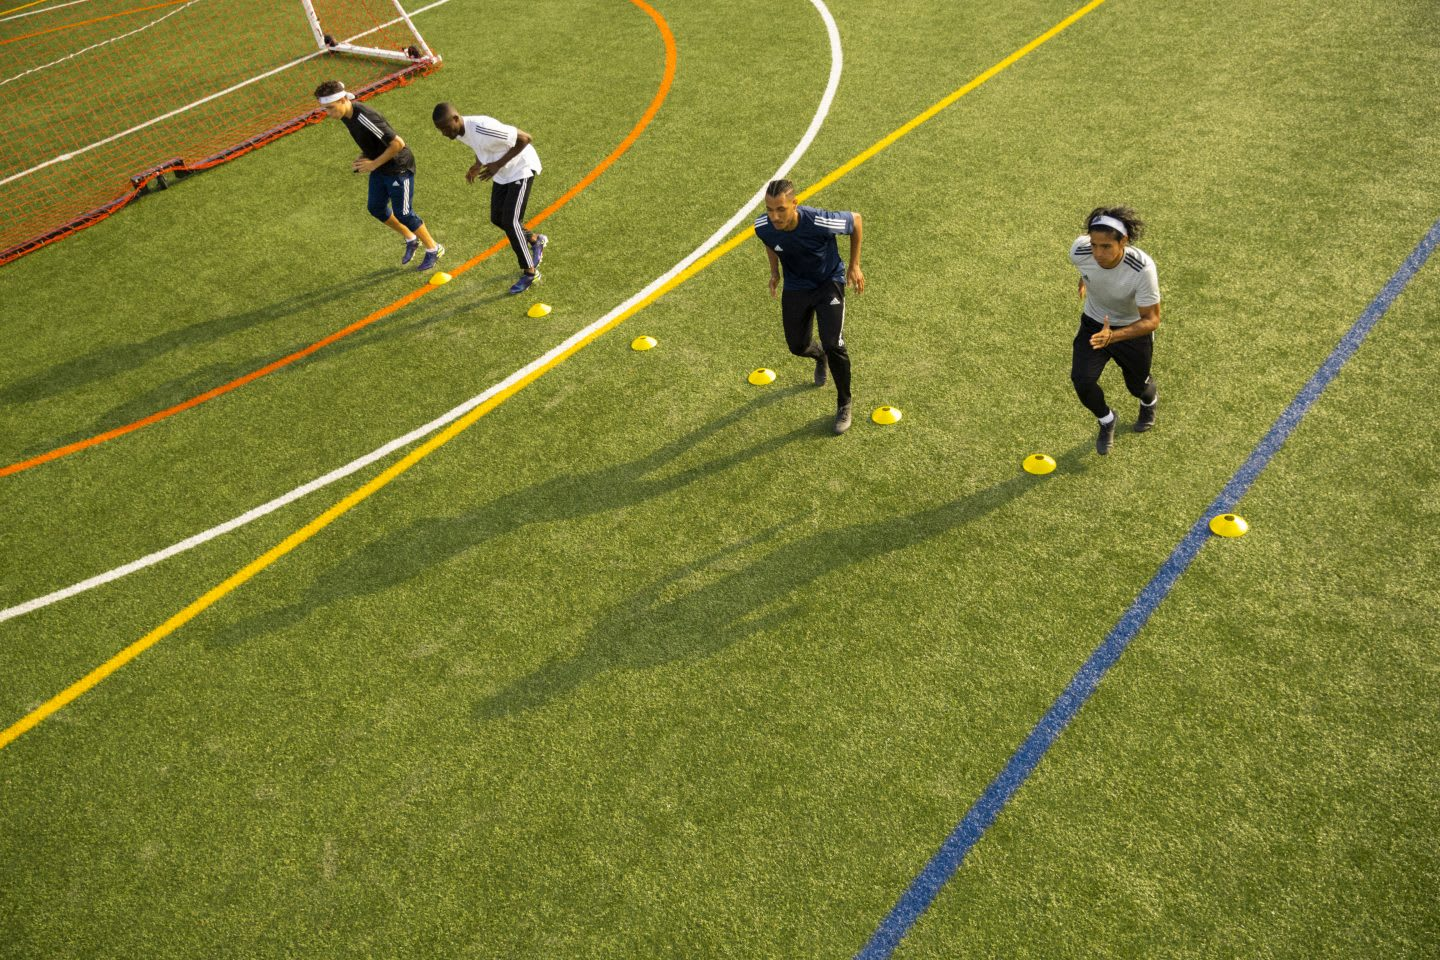 Men lining up on a football field to perform football drills, soccer, football, sports, exercise, fitness, adidas